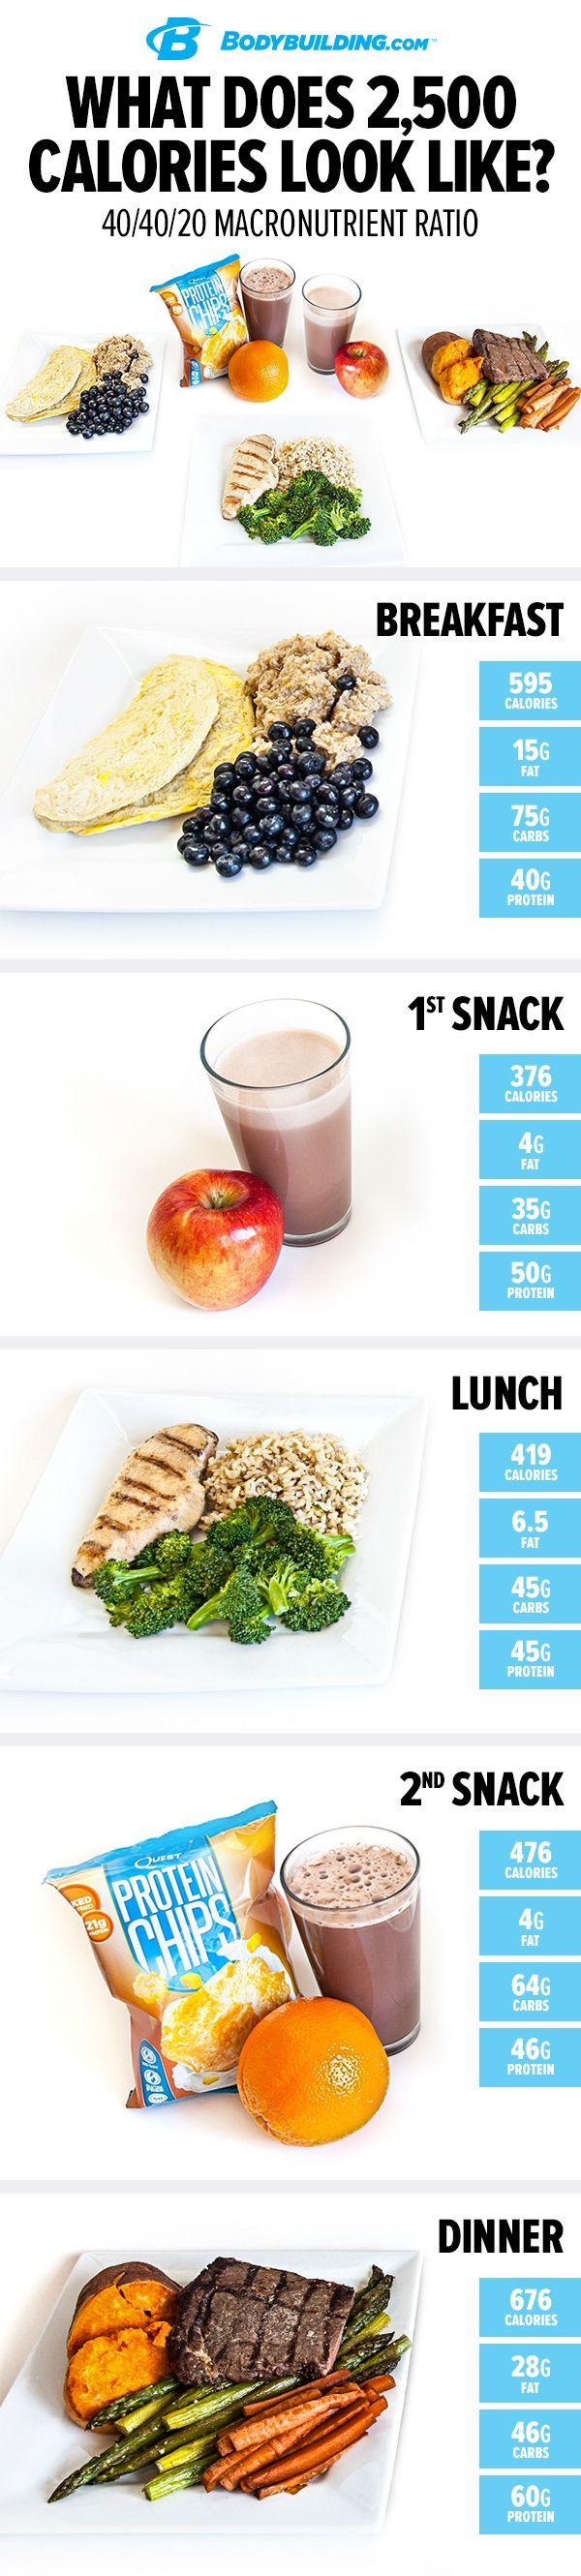 What Does 2,500 Calories Look Like? 40/40/20. If you like eating, the traditional bodybuilding plan is great because you get to consume a pretty high volume of food. If you like a little more fat in your diet, though, you may want to consider a different option.